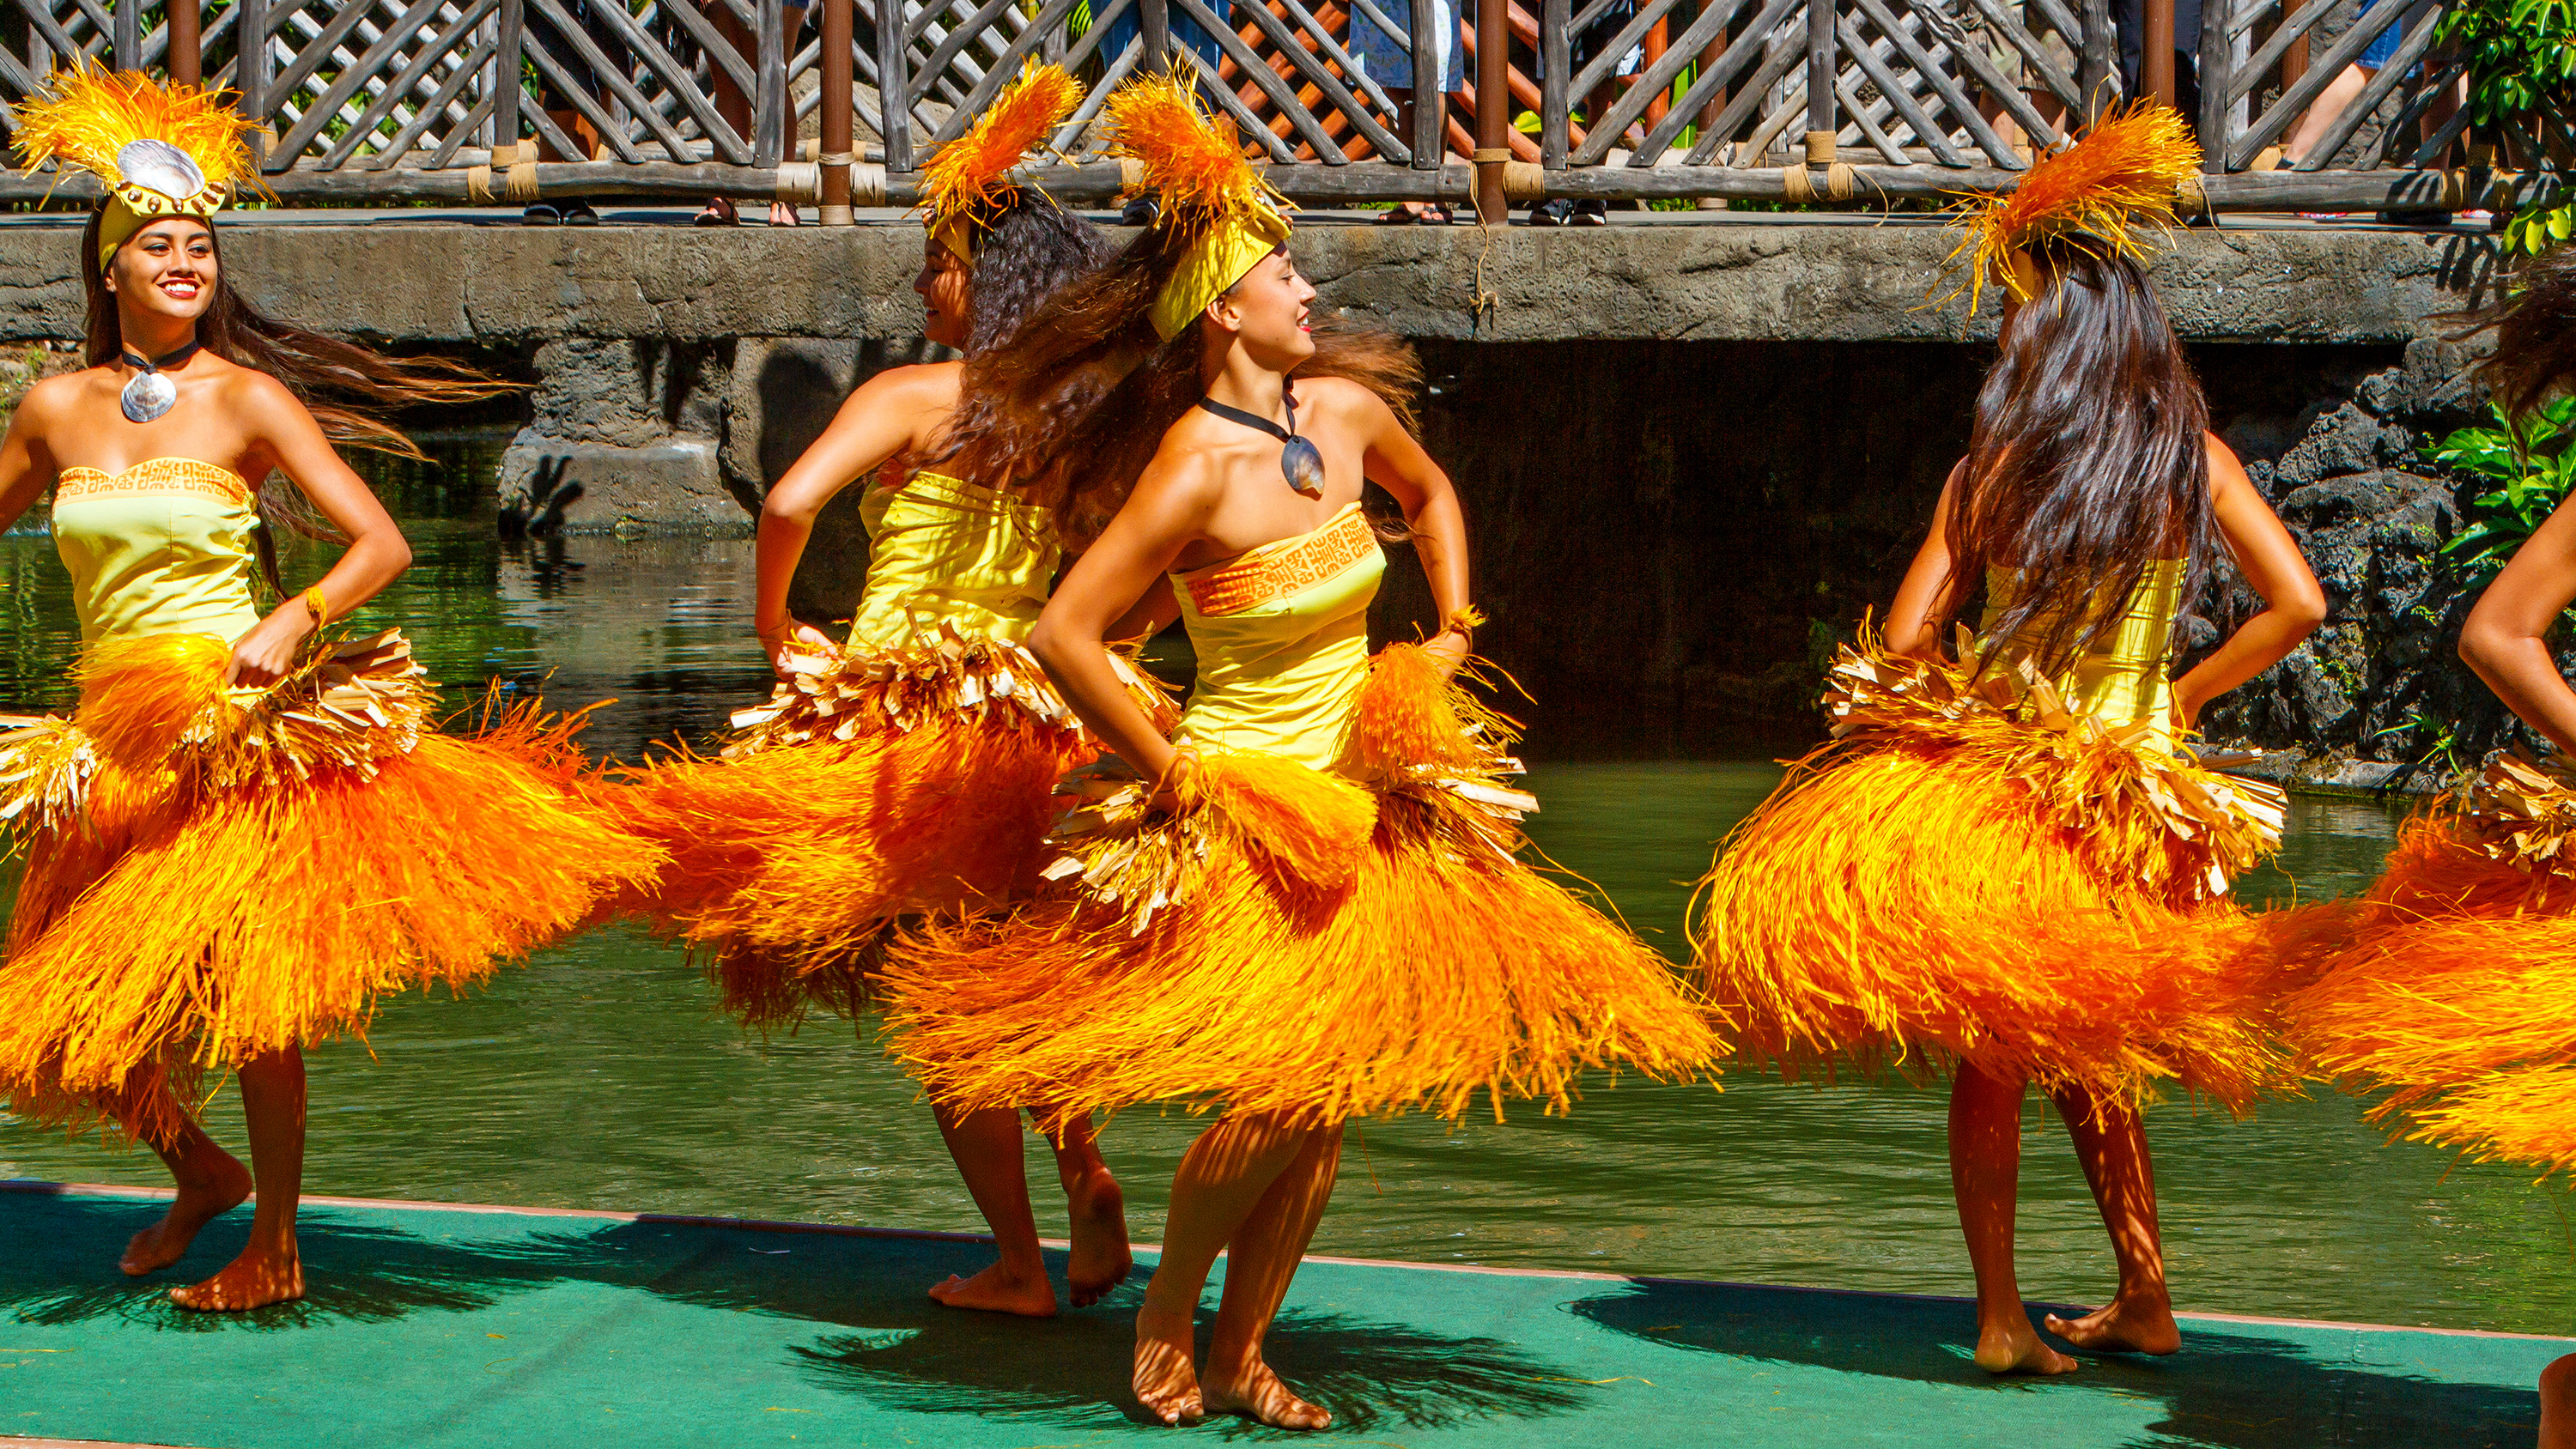 cultural synthesis in 'dream in hawaii' 1,717 likes, 13 comments - the royal hawaiian (@royal_hawaiian) on instagram: a #dream #vacation surrounded by culture and history #onlyattheroyal.